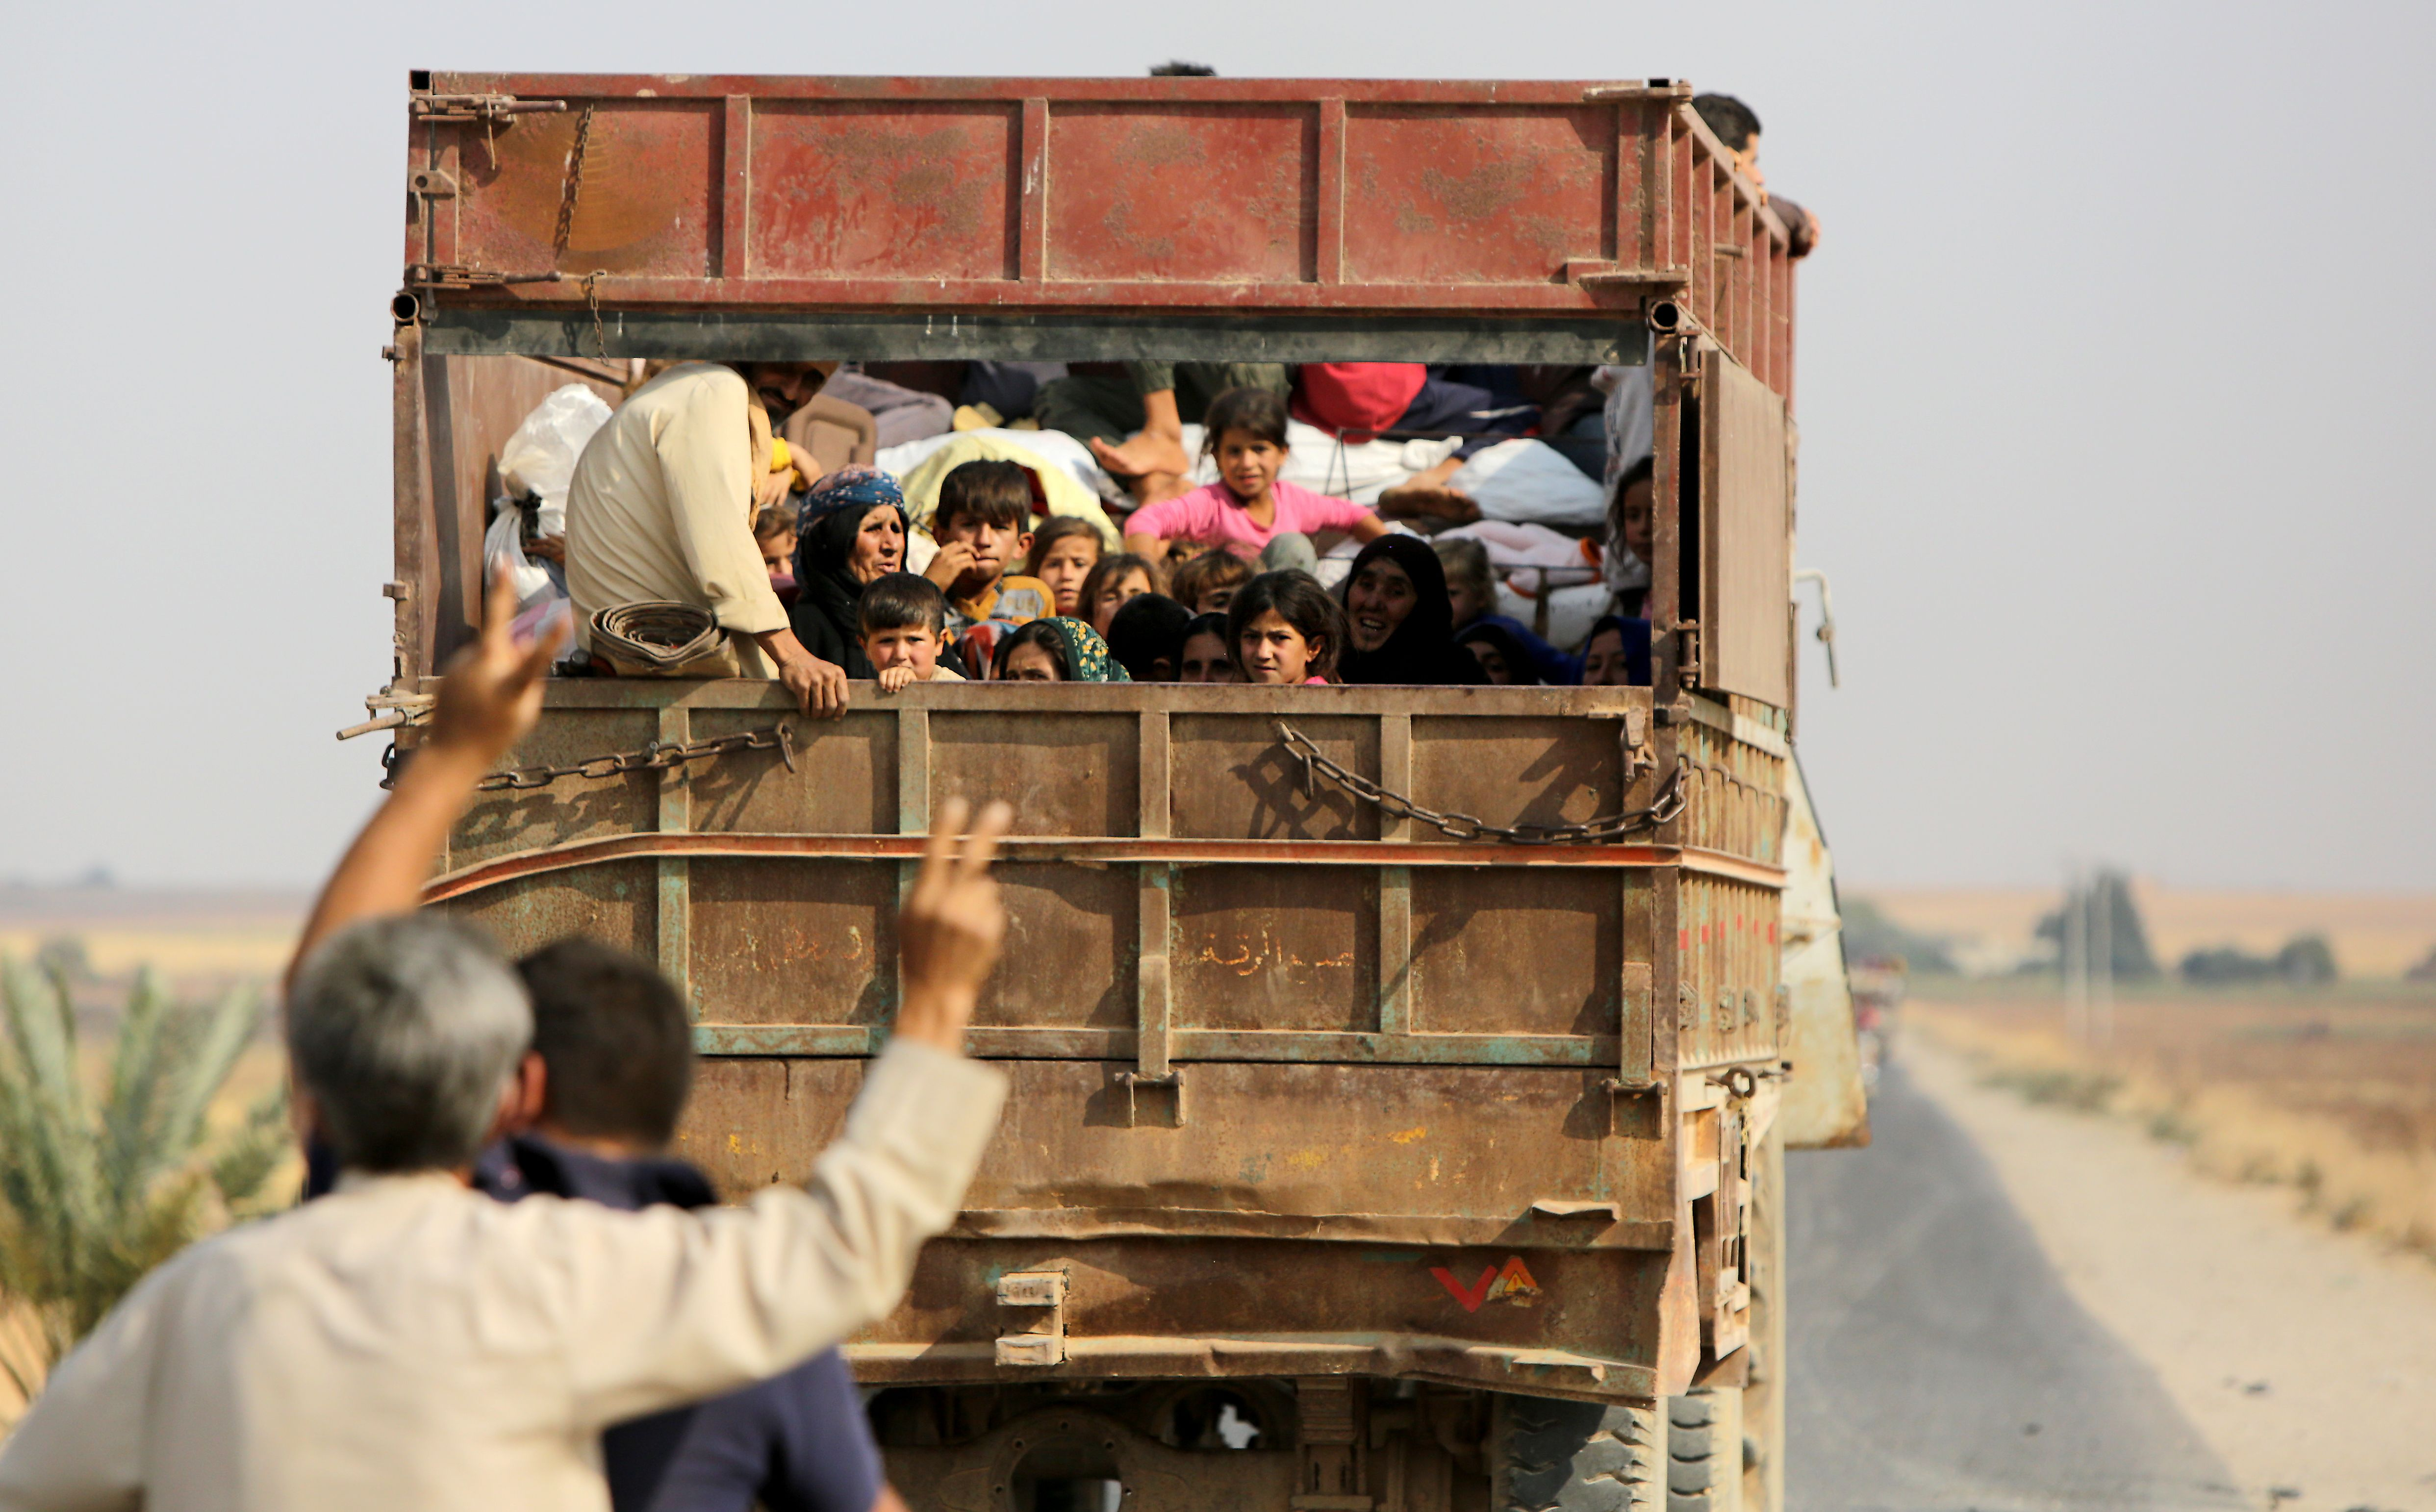 Kurdish Syrian civilians flee the town of Kobani on the Turkish border on October 16, 2019 as Turkey and its allies continue their assault on Kurdish-held border towns in northeastern Syria. (Photo by BAKR ALKASEM/AFP via Getty Images)